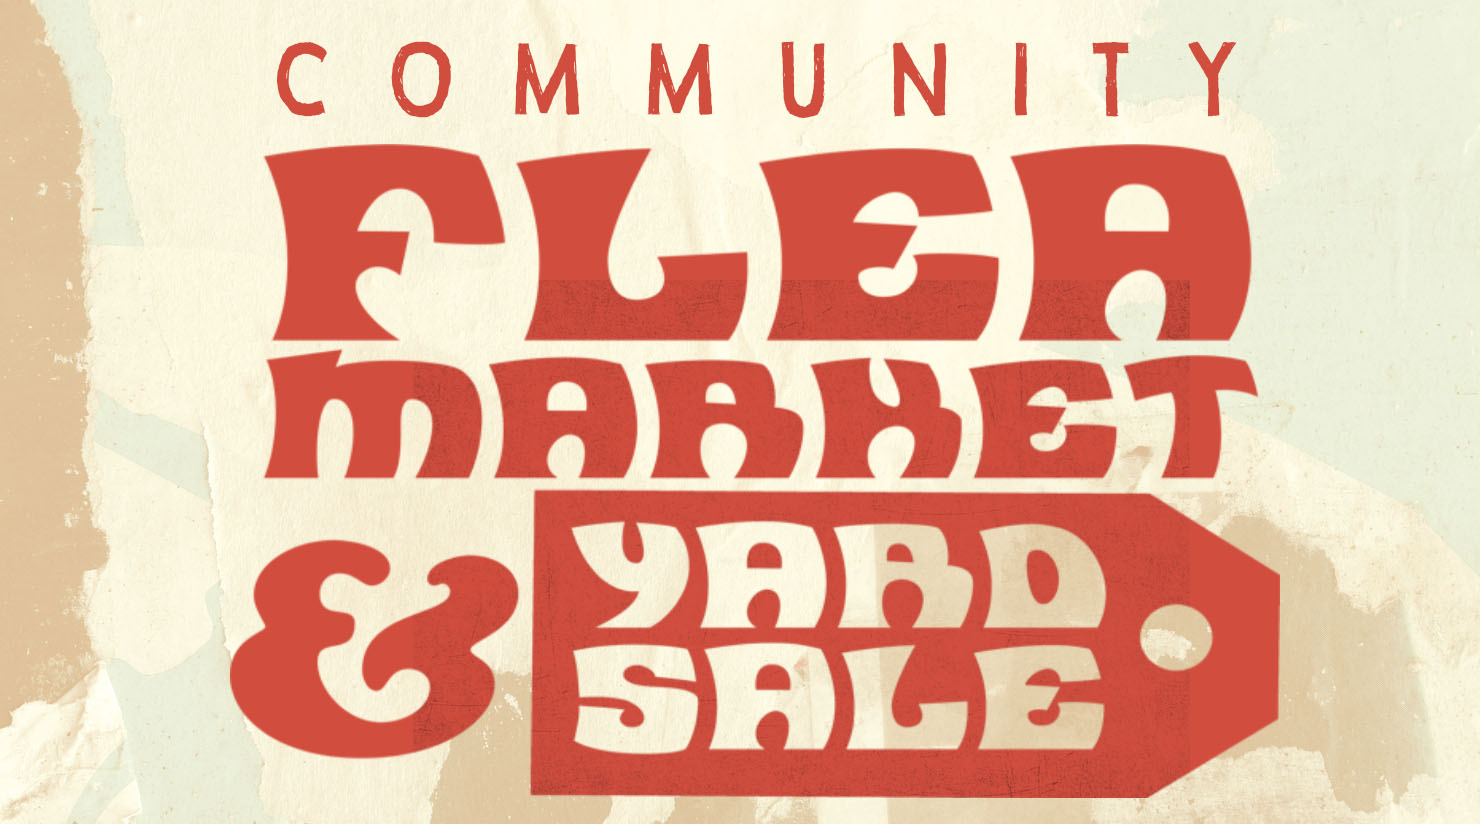 Community Yard Sale & Flea Market